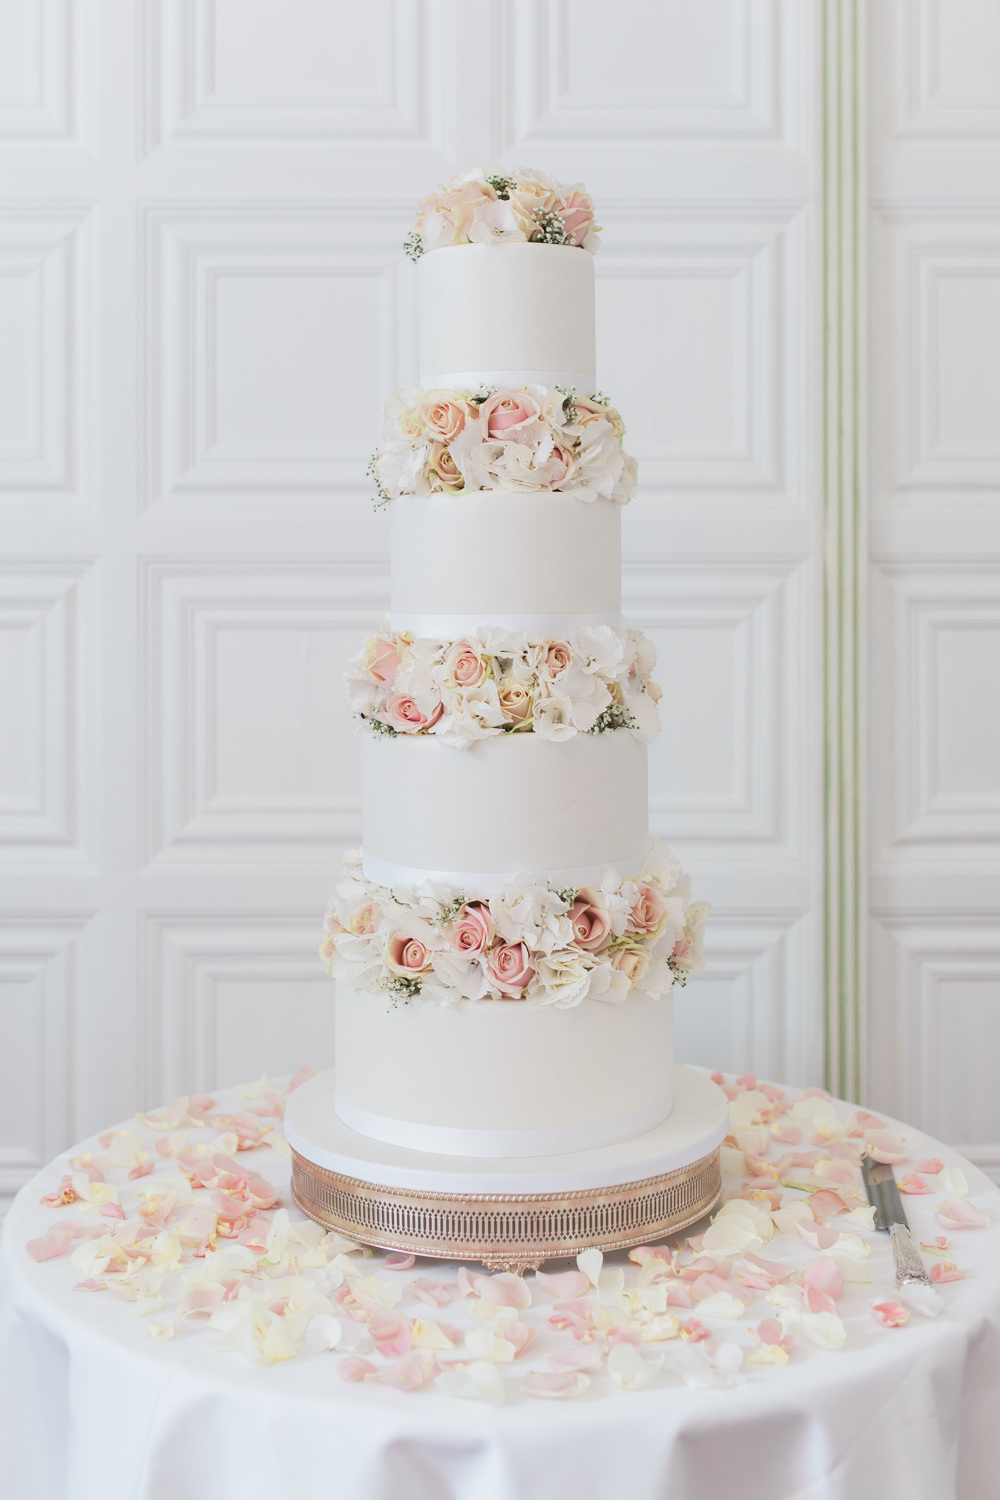 Tiered Cake Flowers Floral Traditional Iced Hengrave Hall Wedding Gemma Giorgio Photography